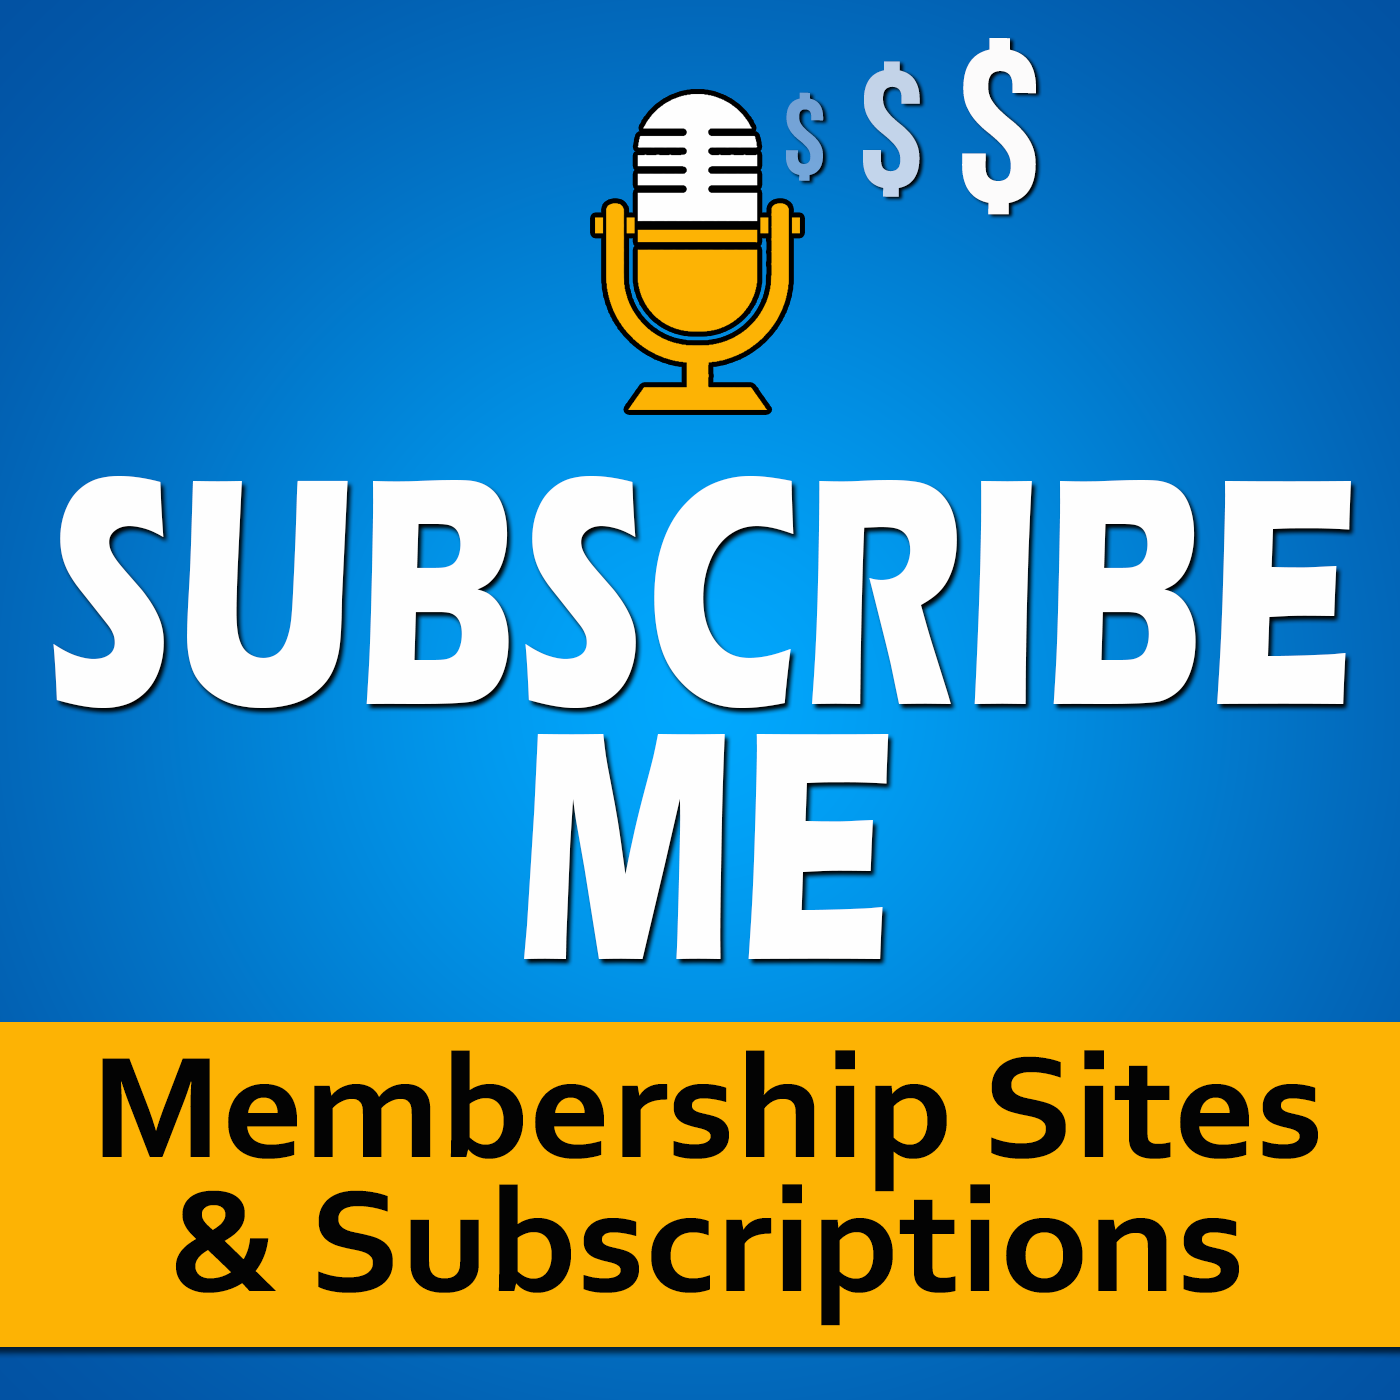 Membership Sites & Online Courses, Create, Sell & Deliver Digital Content from SubscribeMe.fm